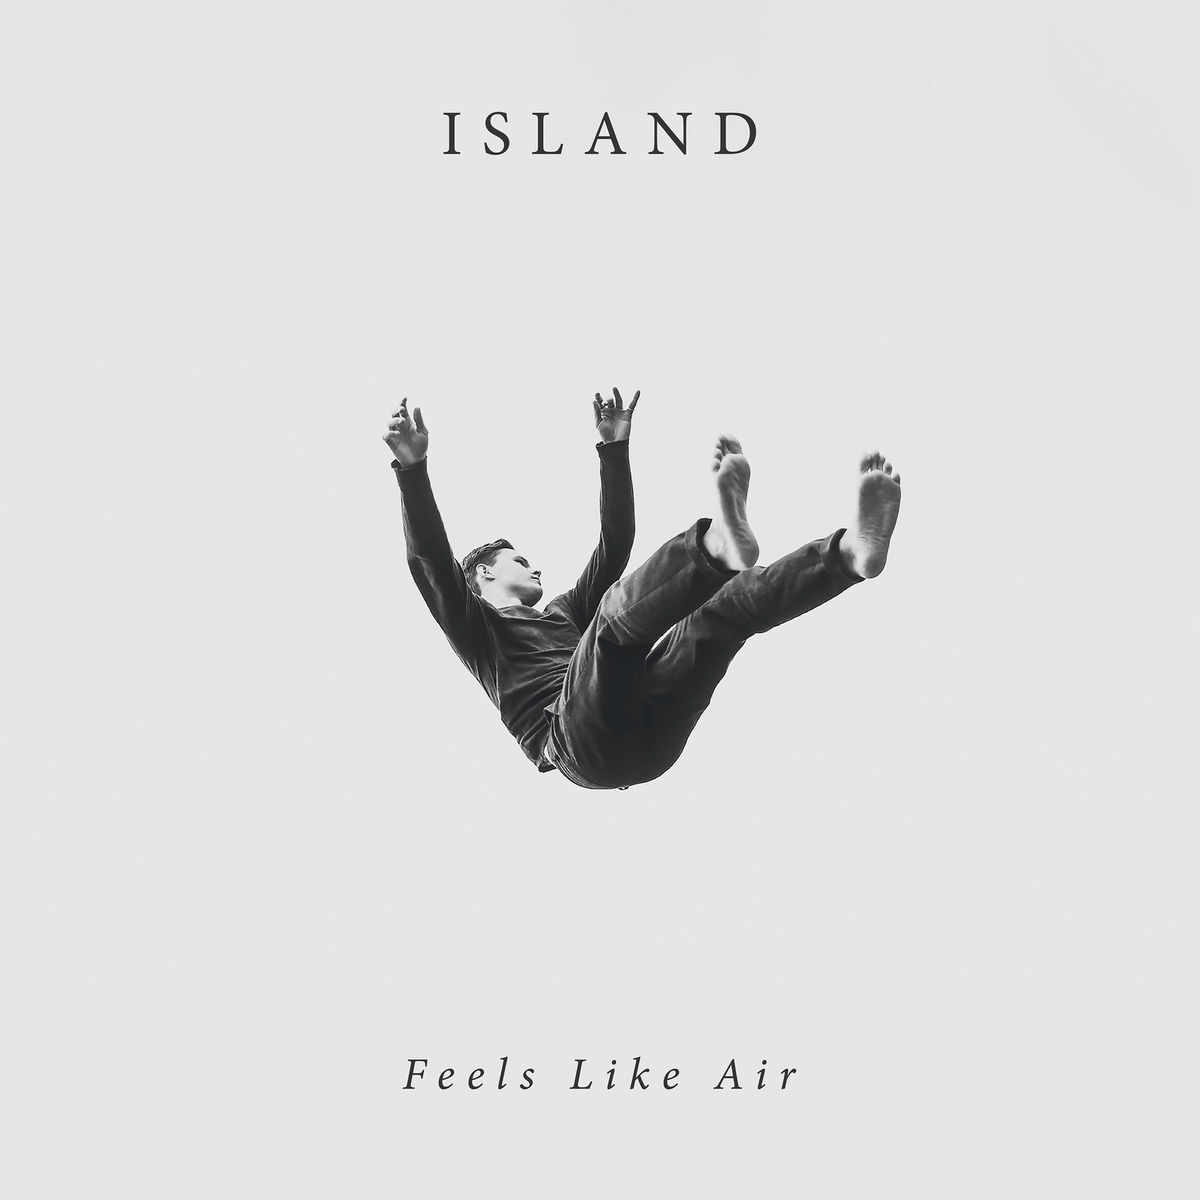 Feels Like Air